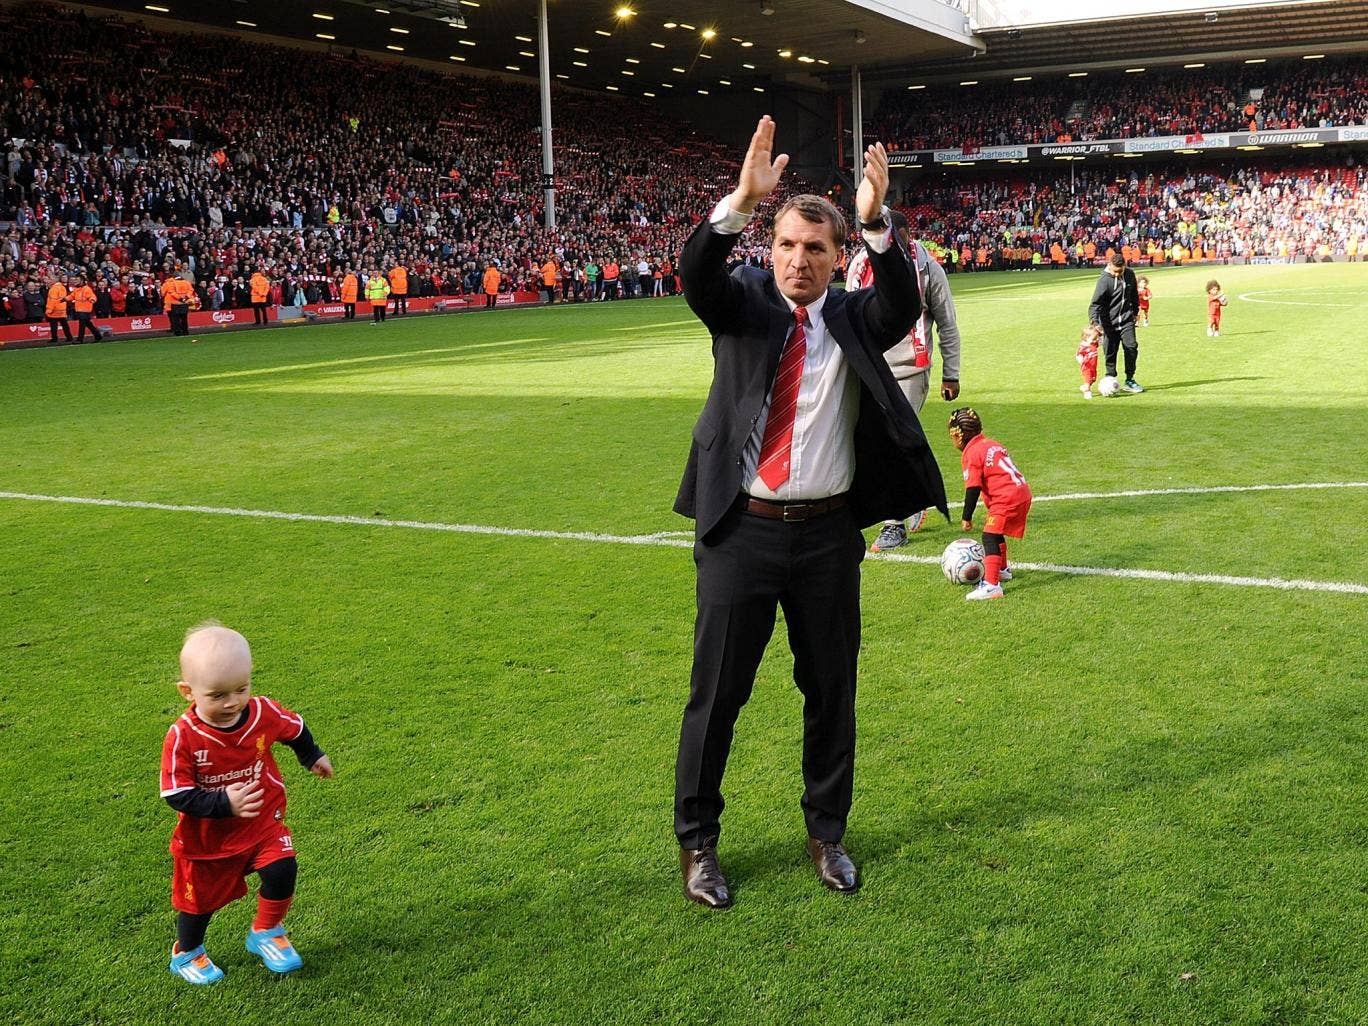 Brendan Rodgers applauds the Liverpool fans for their support this season after the 2-1 win over Newcastle